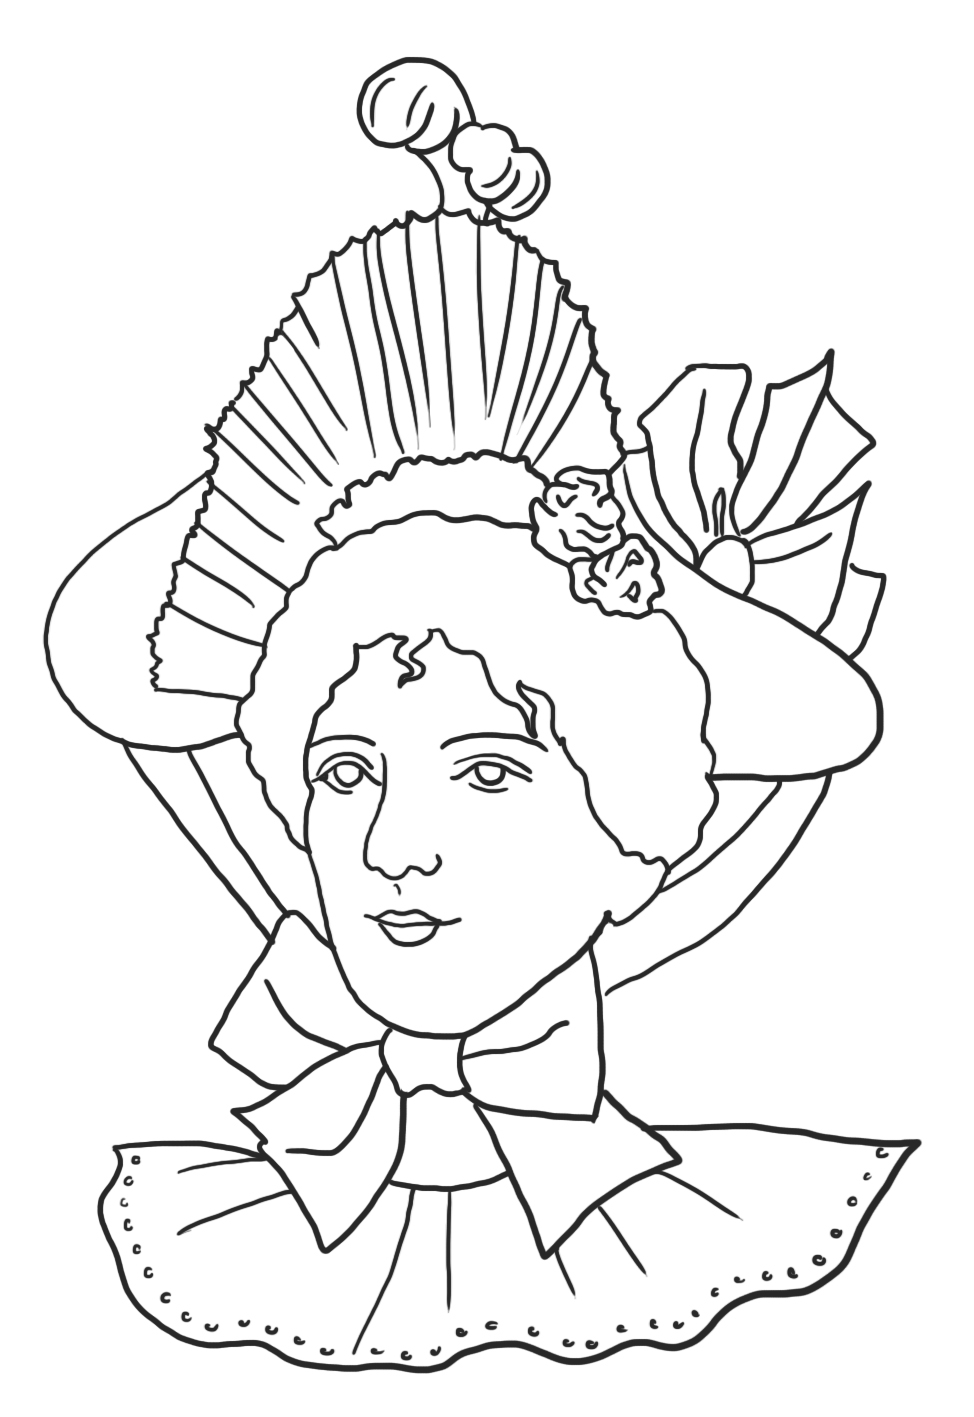 victorian pictures to colour download victorian coloring for free designlooter 2020 victorian colour to pictures